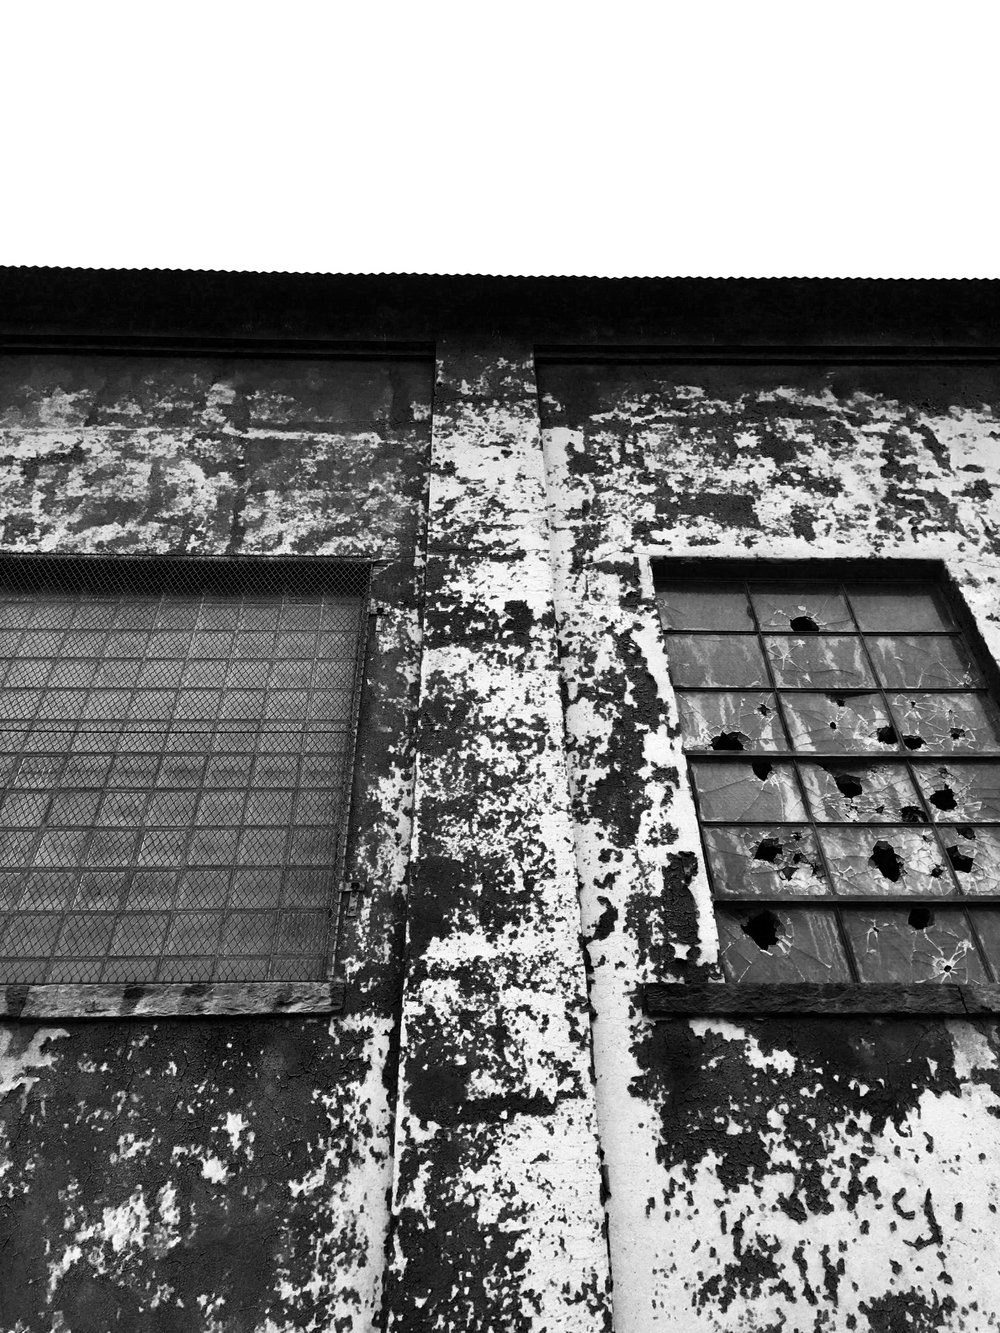 Black and White Textured Building Photograph